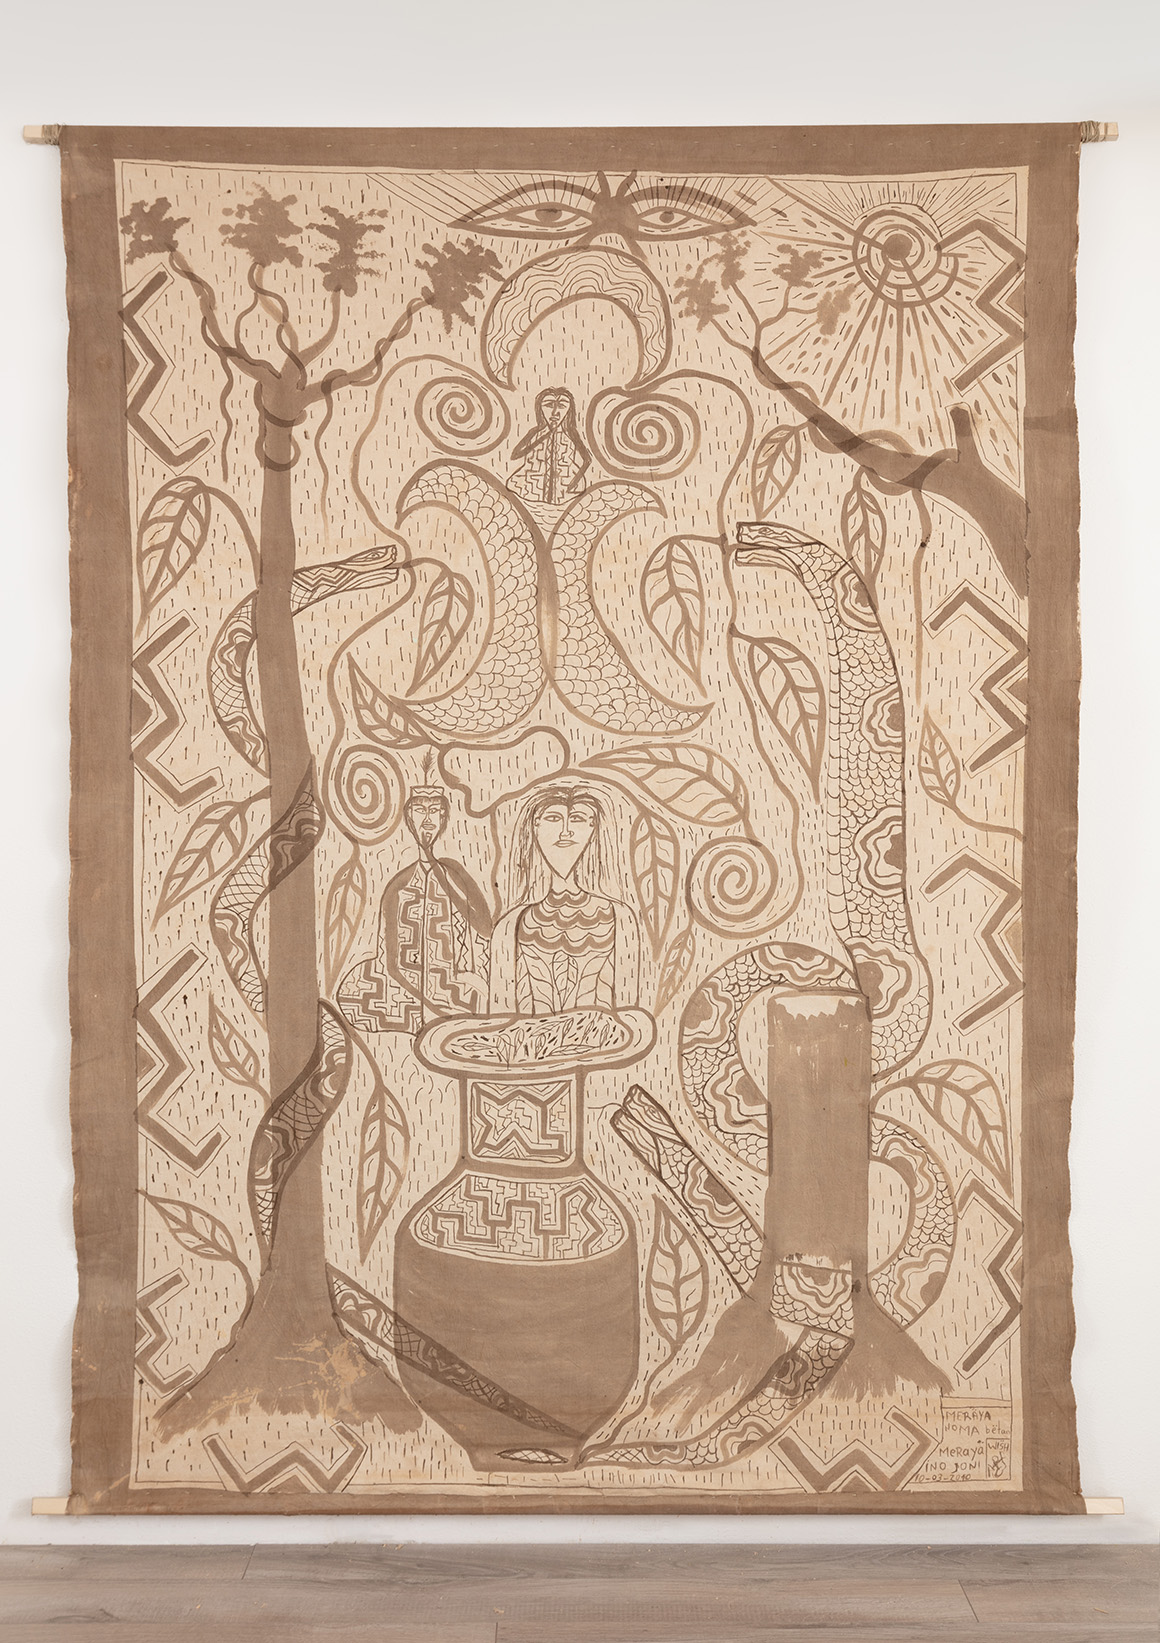 "<p><span class=""name"">The Estate of Filder Agustín Peña</span><br><em>La Mujer Curandera y el Hombre Jaguar Curandero</em><span class='media'>Ayahuasca on fabric</span>81 x 62 in(205.7 x 157.5 cm)<br>2018<br><a class='inquire' href='mailto:info@gildargallery.com?subject=Artwork Inquiry FAPE0005&body=I am interested in finding out more about La Mujer Curandera y el Hombre Jaguar Curandero by The Estate of Filder Agustín Peña'>Inquire</a></p>"